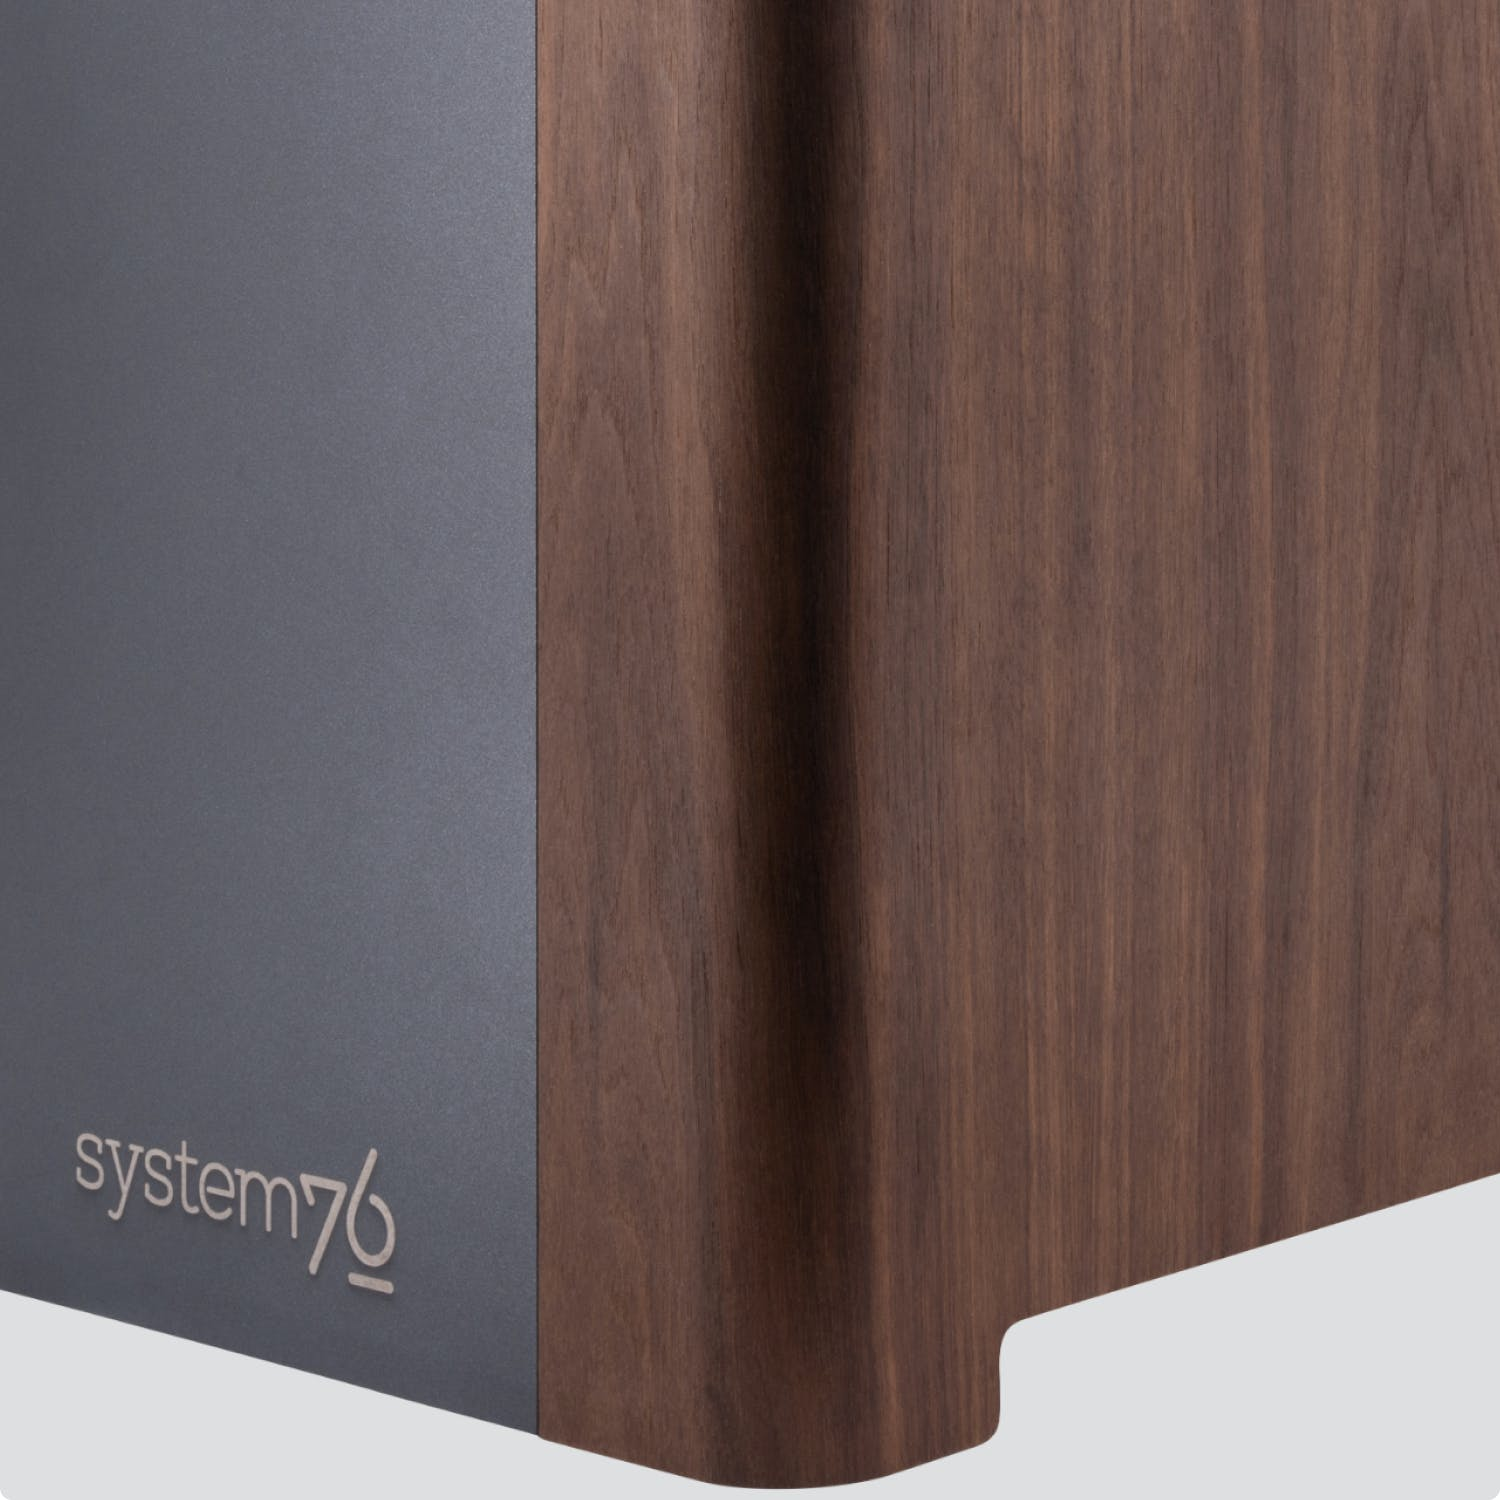 Detail of the exterior showing combination of wood veneer and powder-coated aluminum.